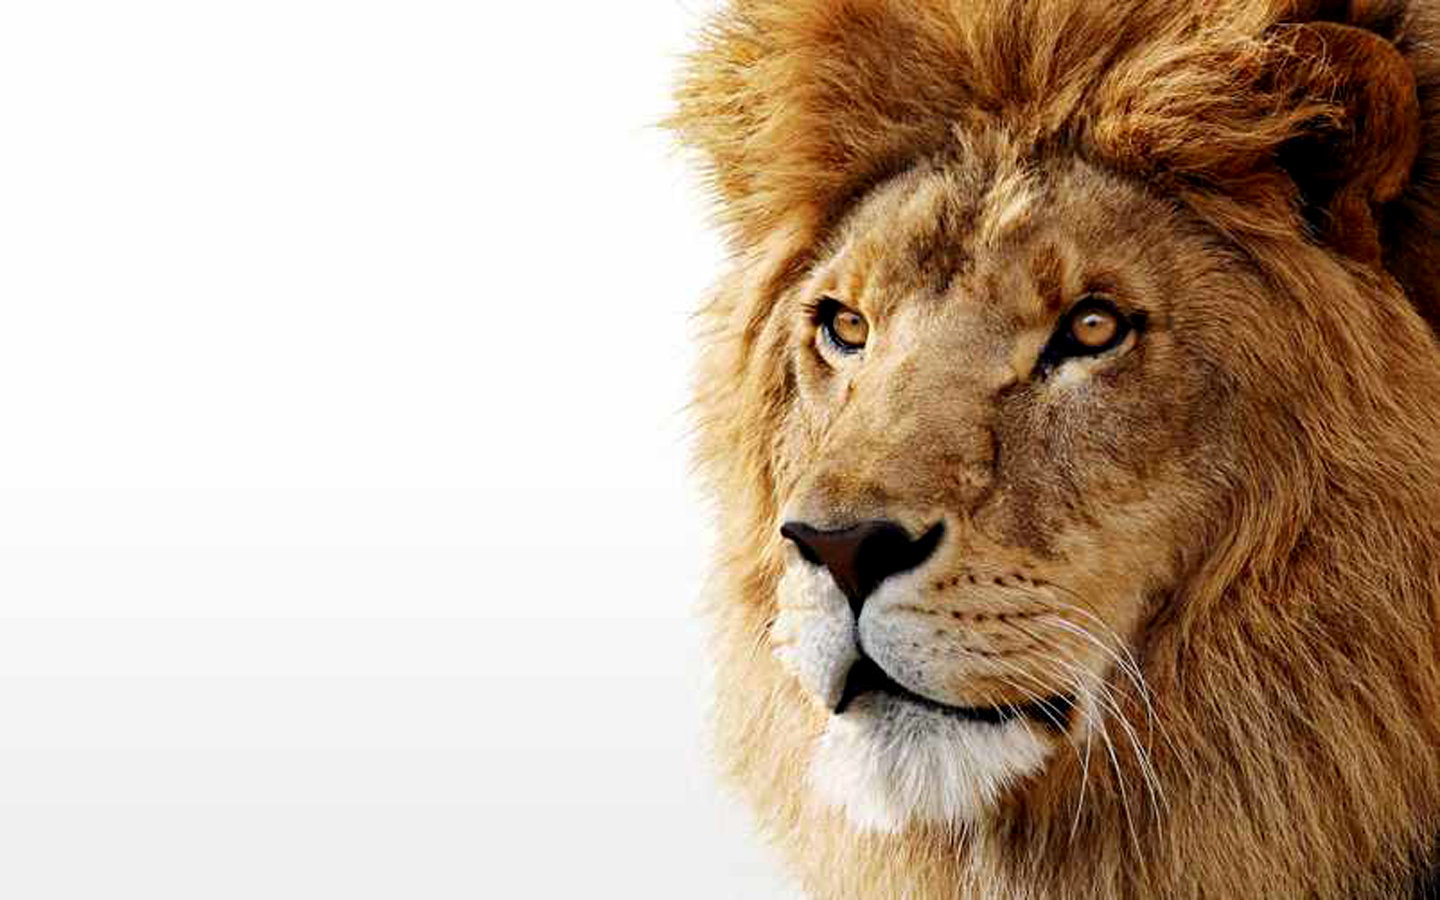 Free Lion high quality wallpaper ID:255991 for hd 1440x900 desktop